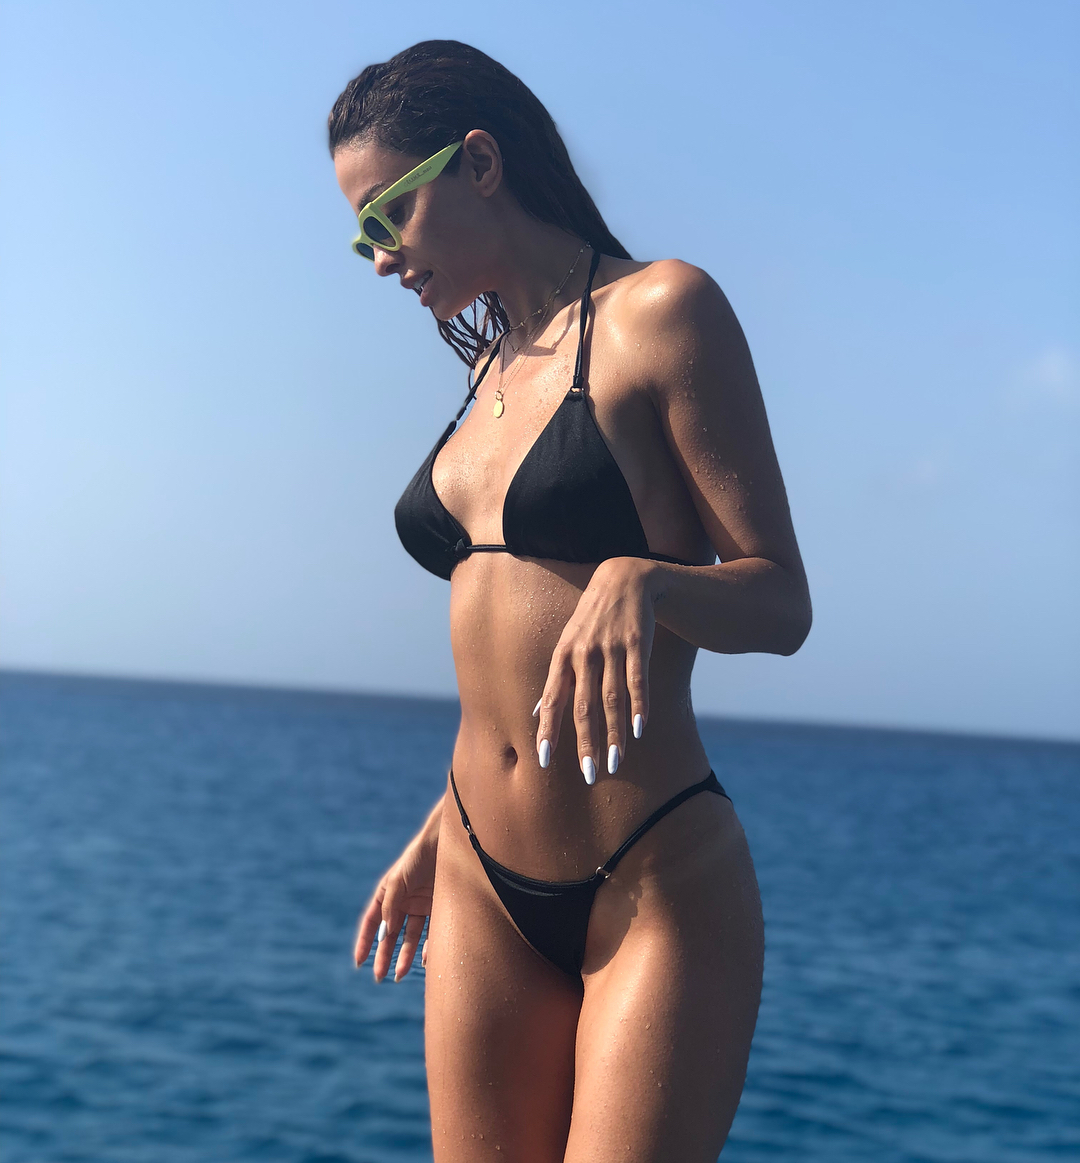 Bikini Eleni Foureira naked (78 photo), Topless, Paparazzi, Instagram, see through 2006